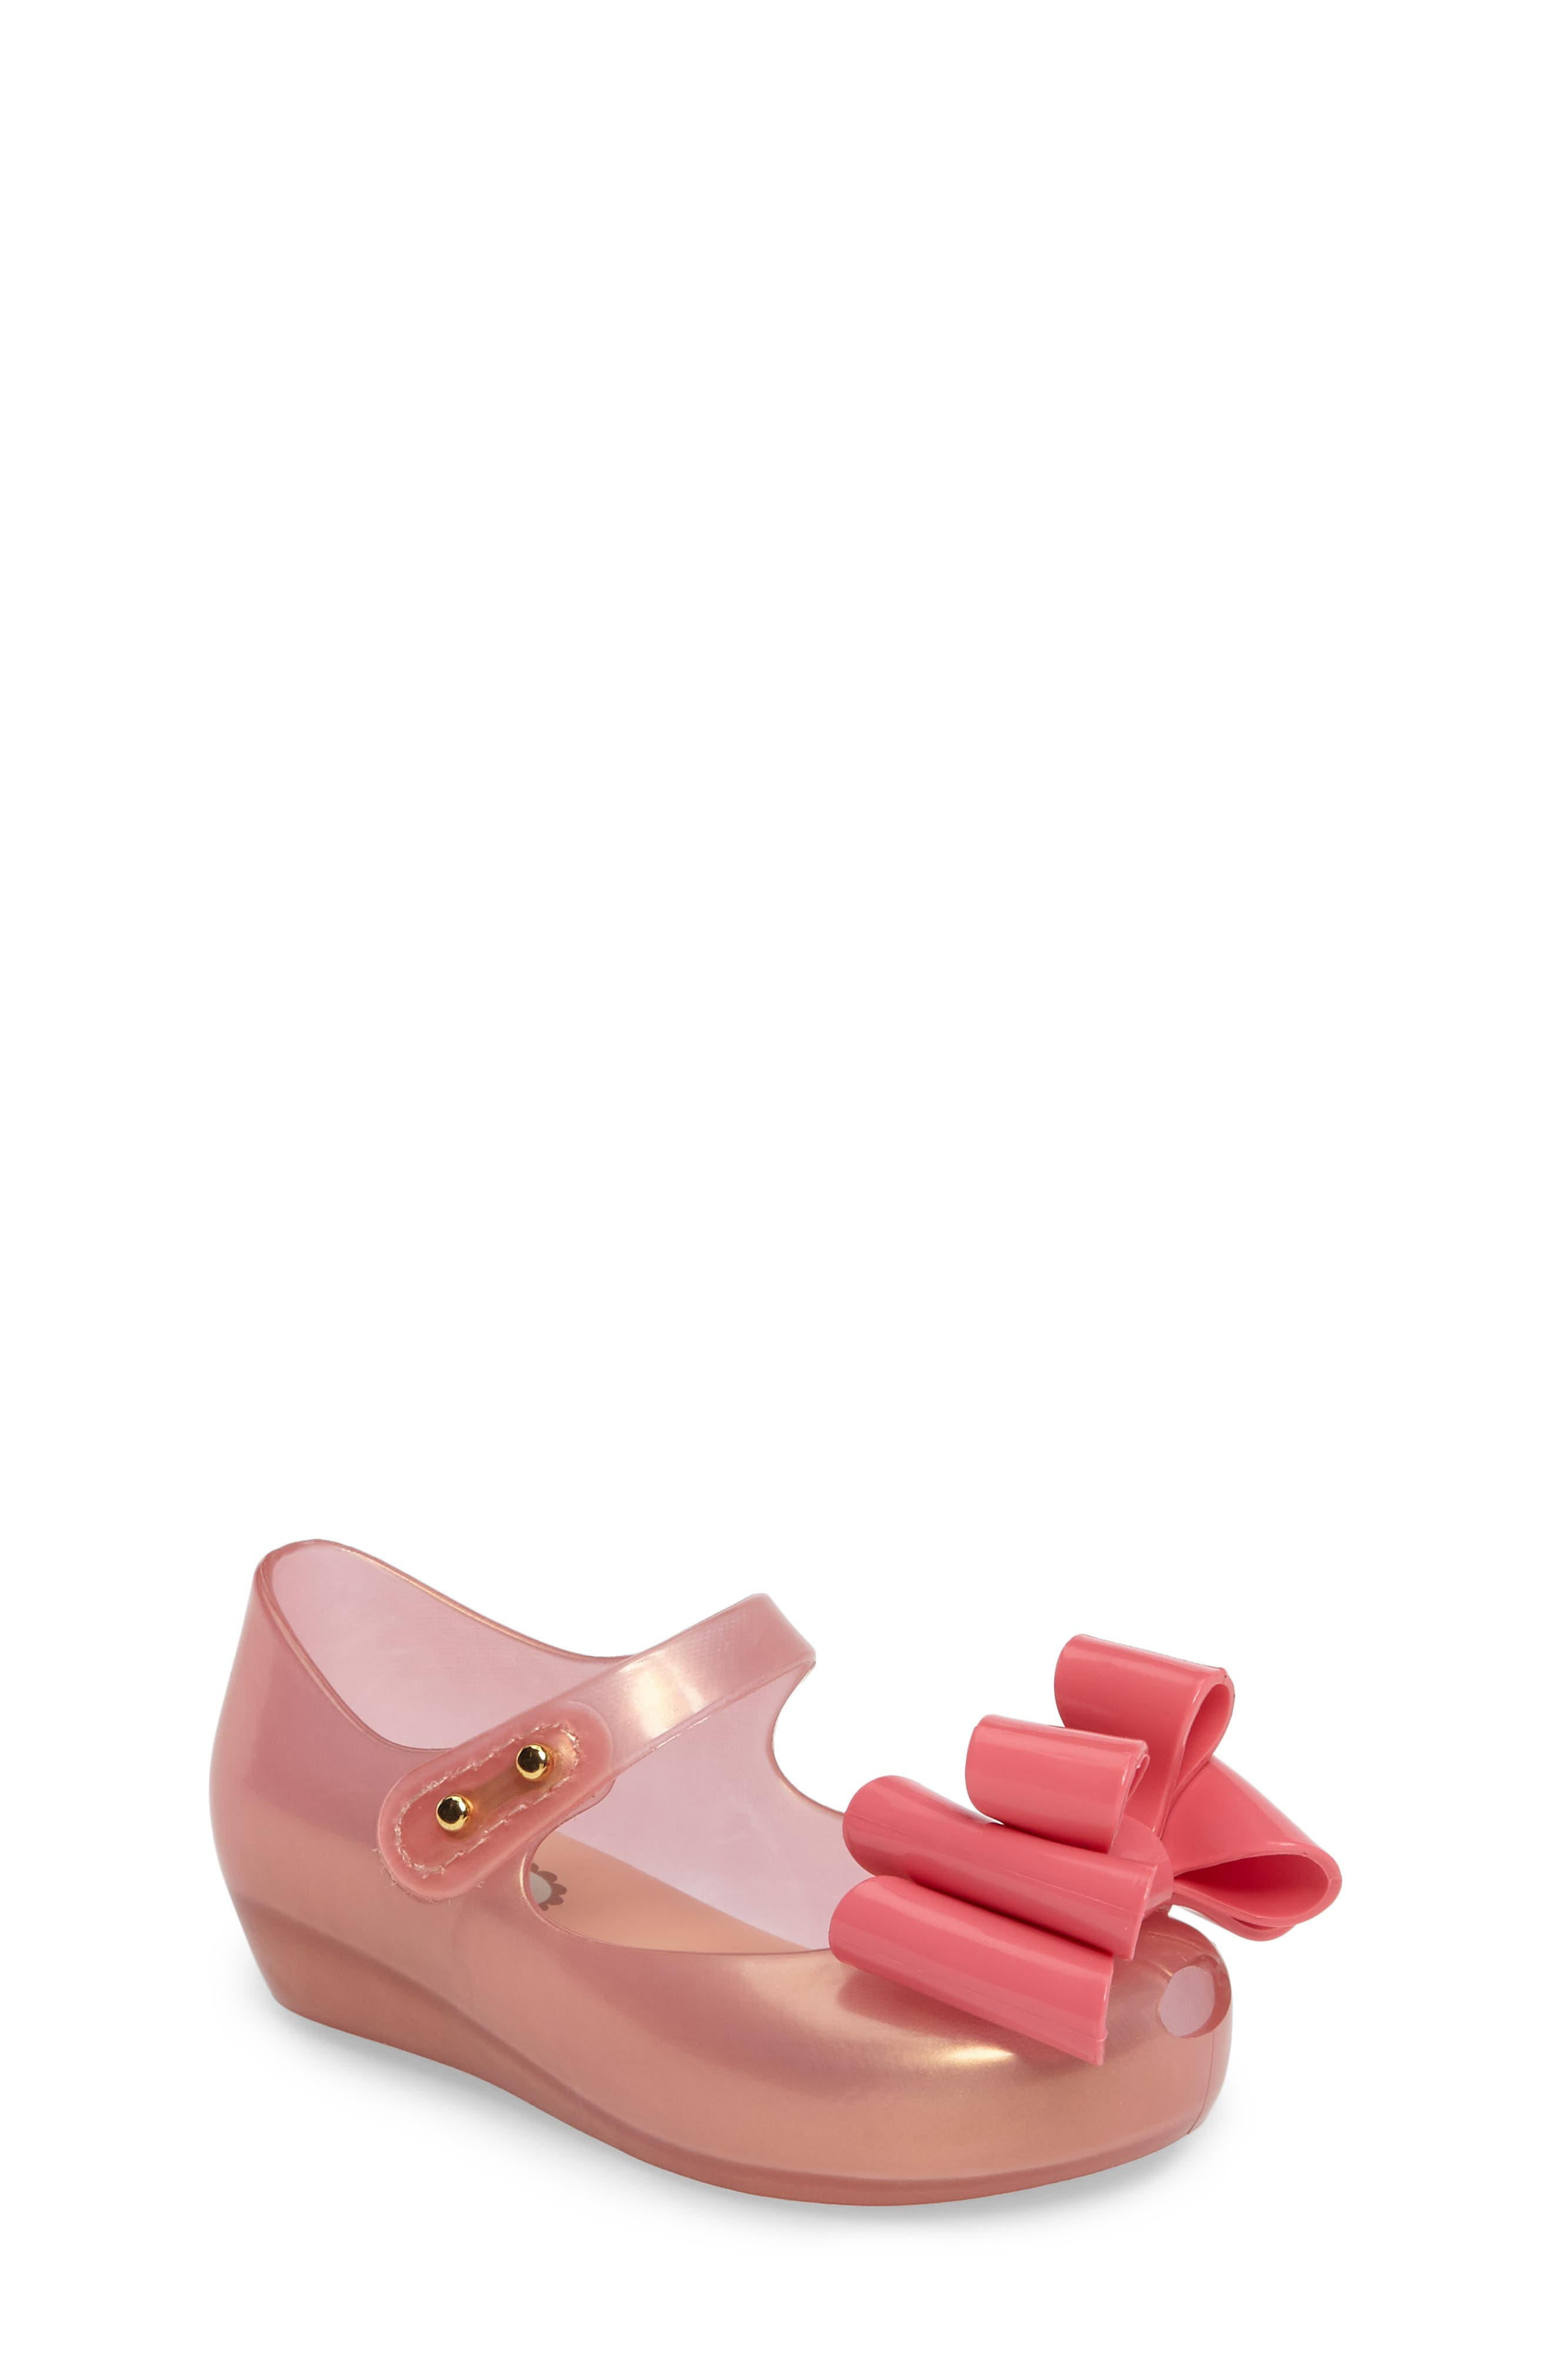 Main Image - Mini Melissa Ultragirl Sweet III Mary Jane Flat (Walker & Toddler)